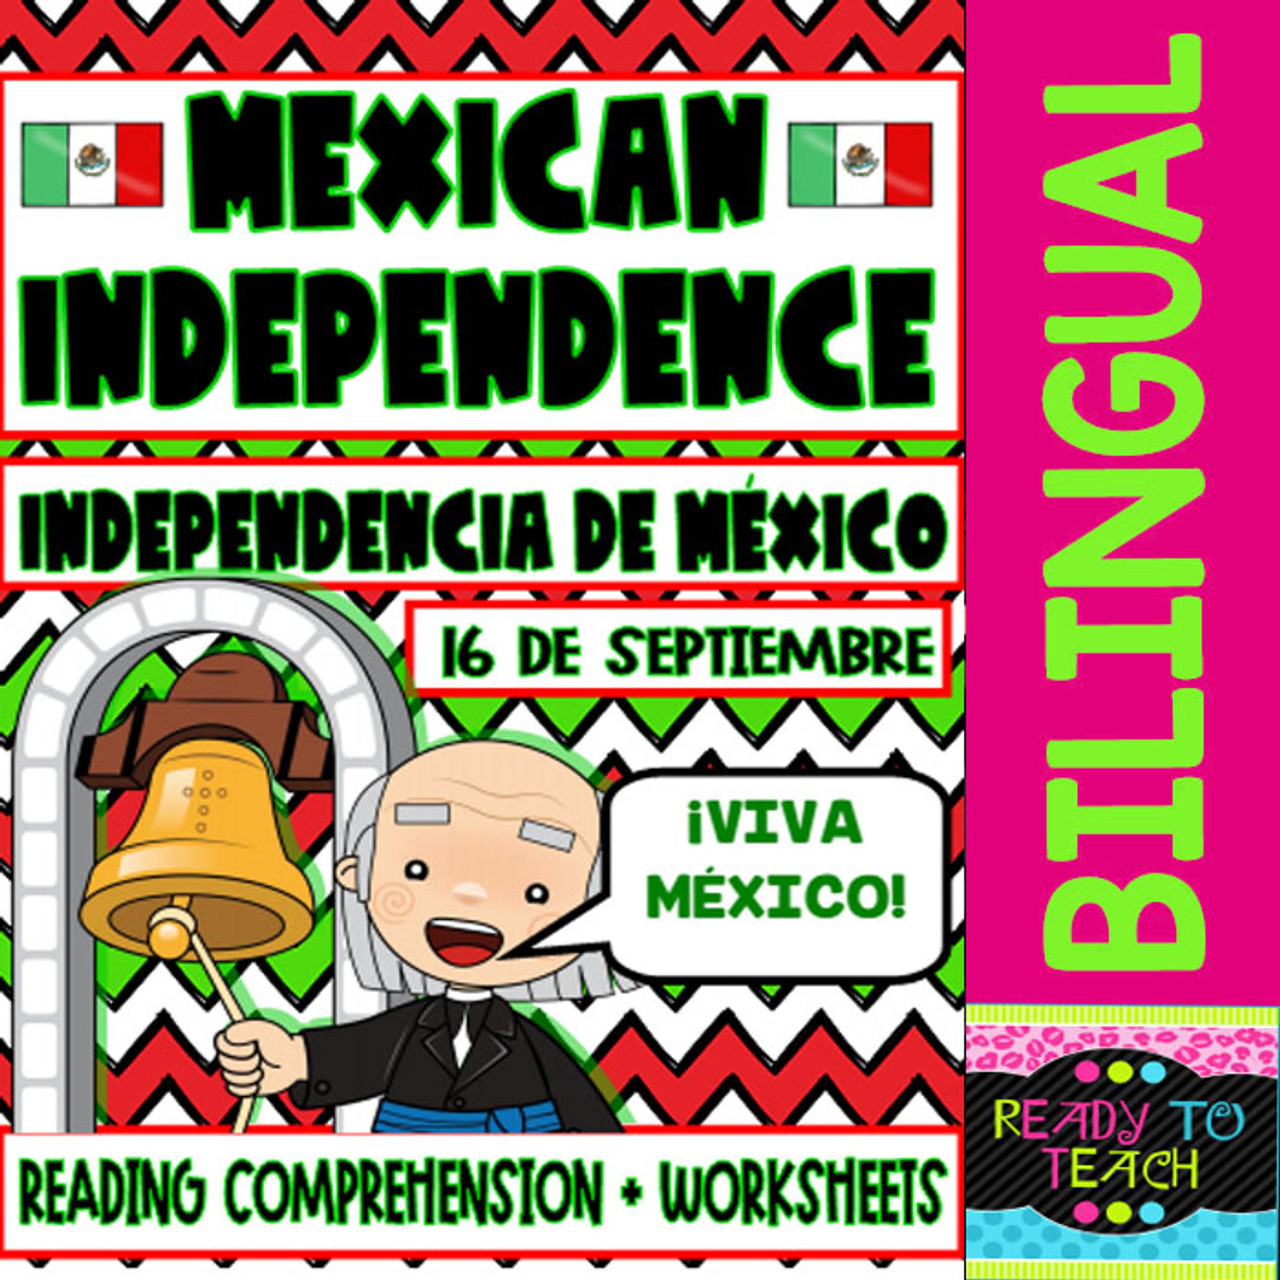 Mexican Independence - Independencia de Mexico - Reading and Worksheets -  Bilingual - Amped Up Learning [ 1280 x 1280 Pixel ]